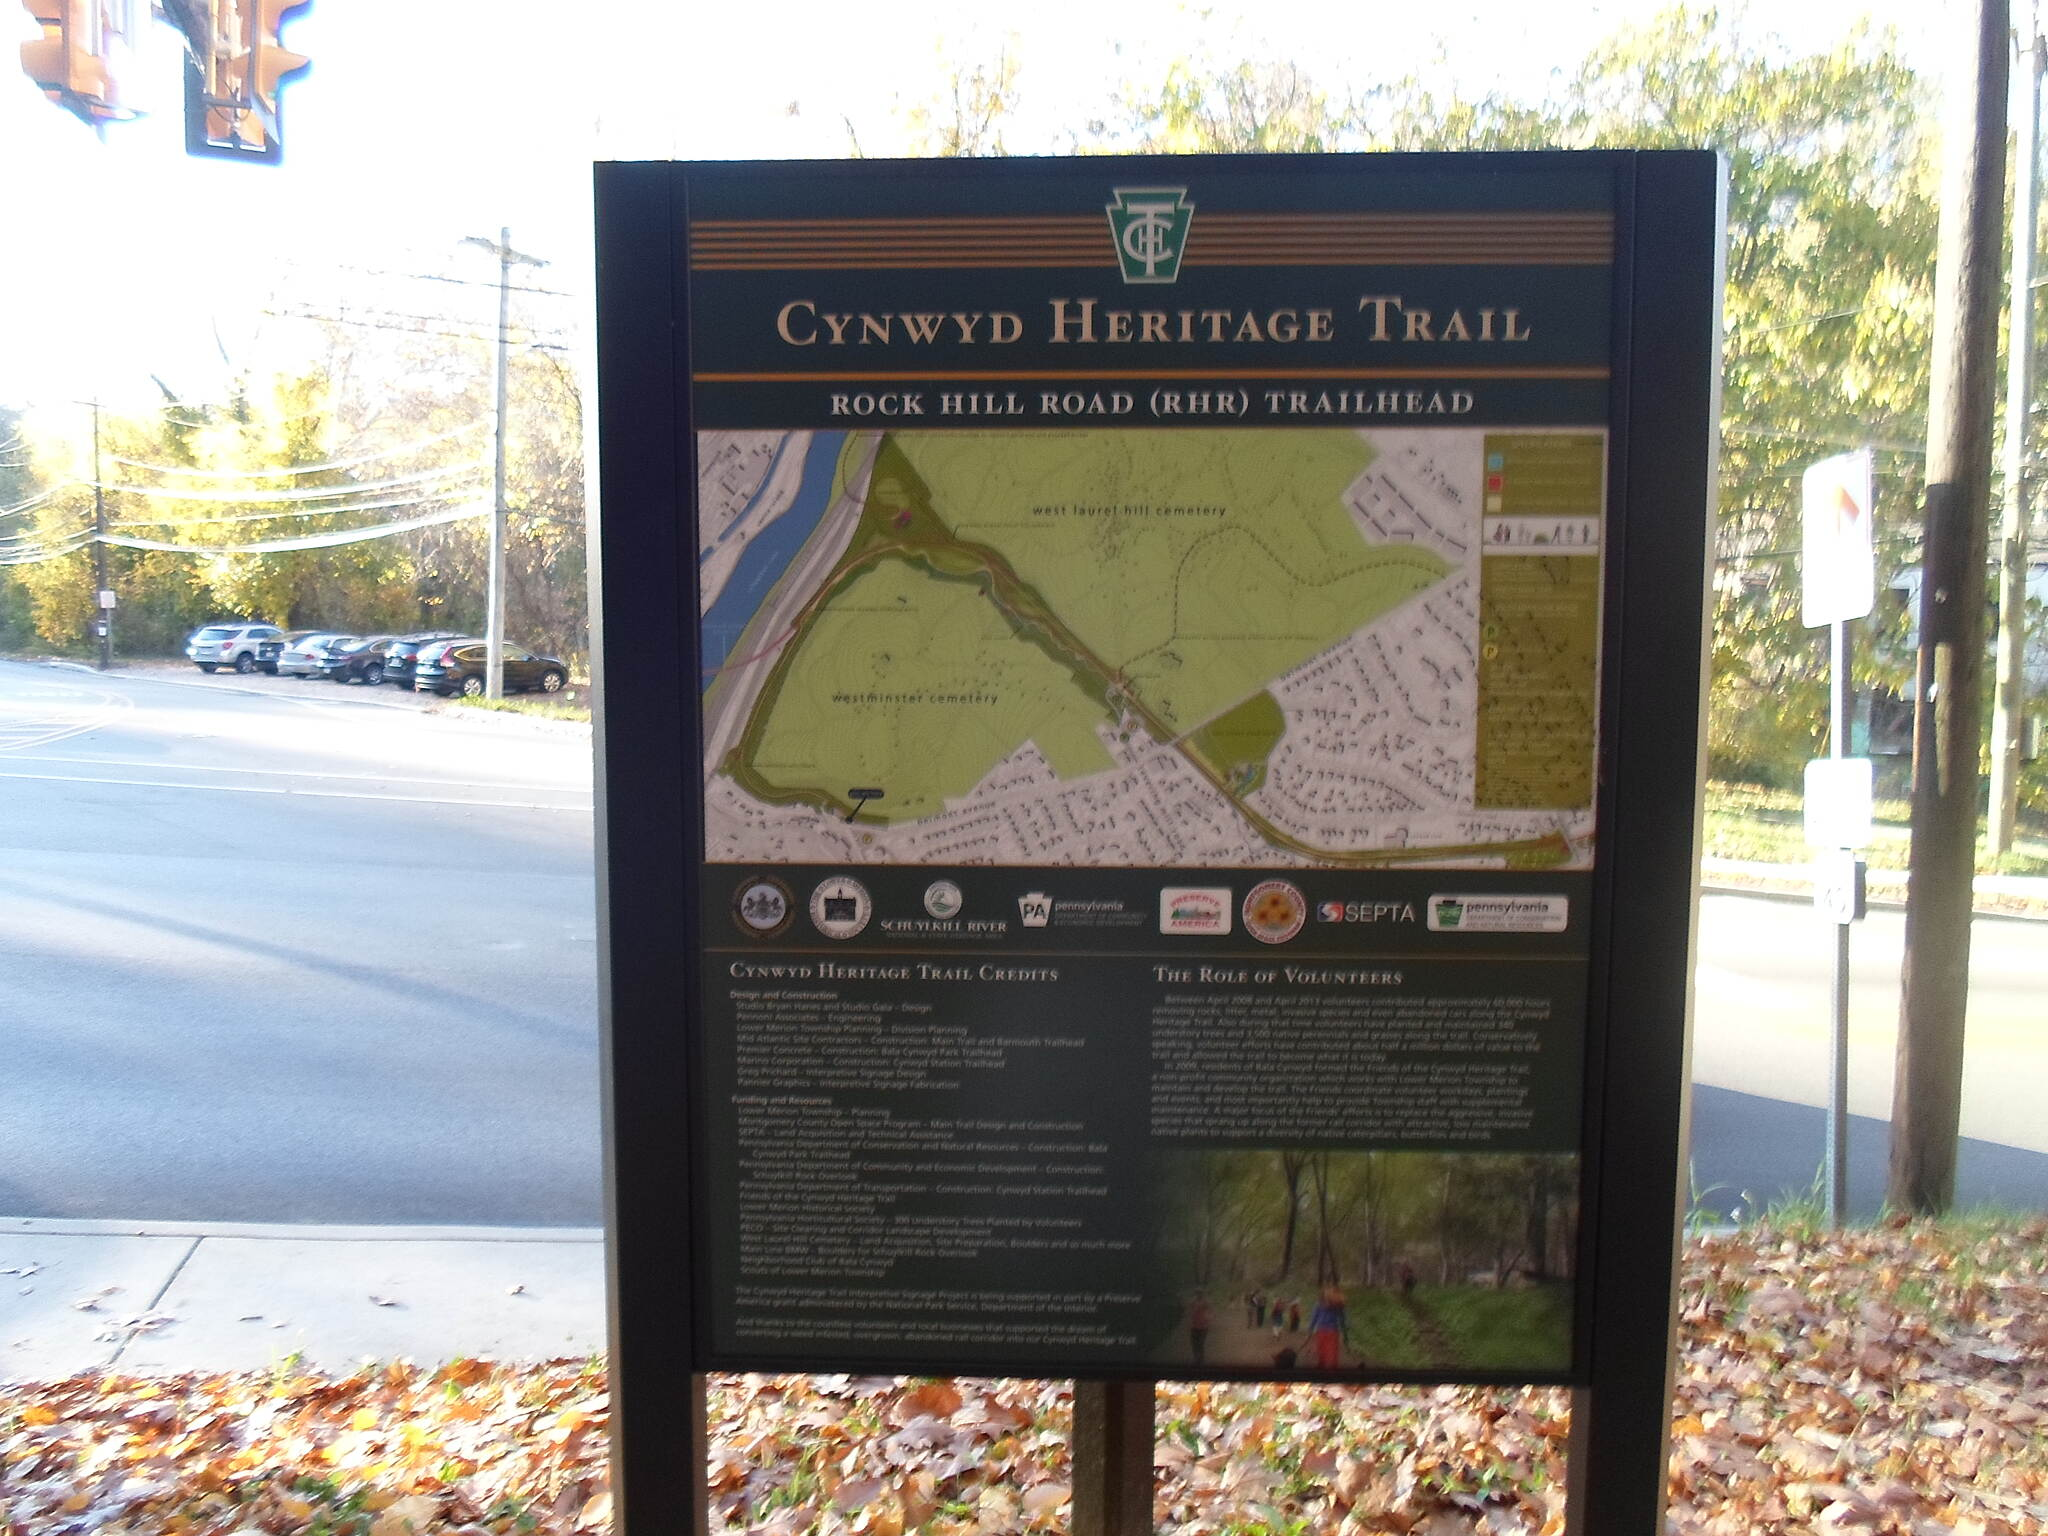 Cynwyd Heritage Trail Cynwyd Heritage Trail Sign marking the Rock Hill trailhead, just southwest of I-76.